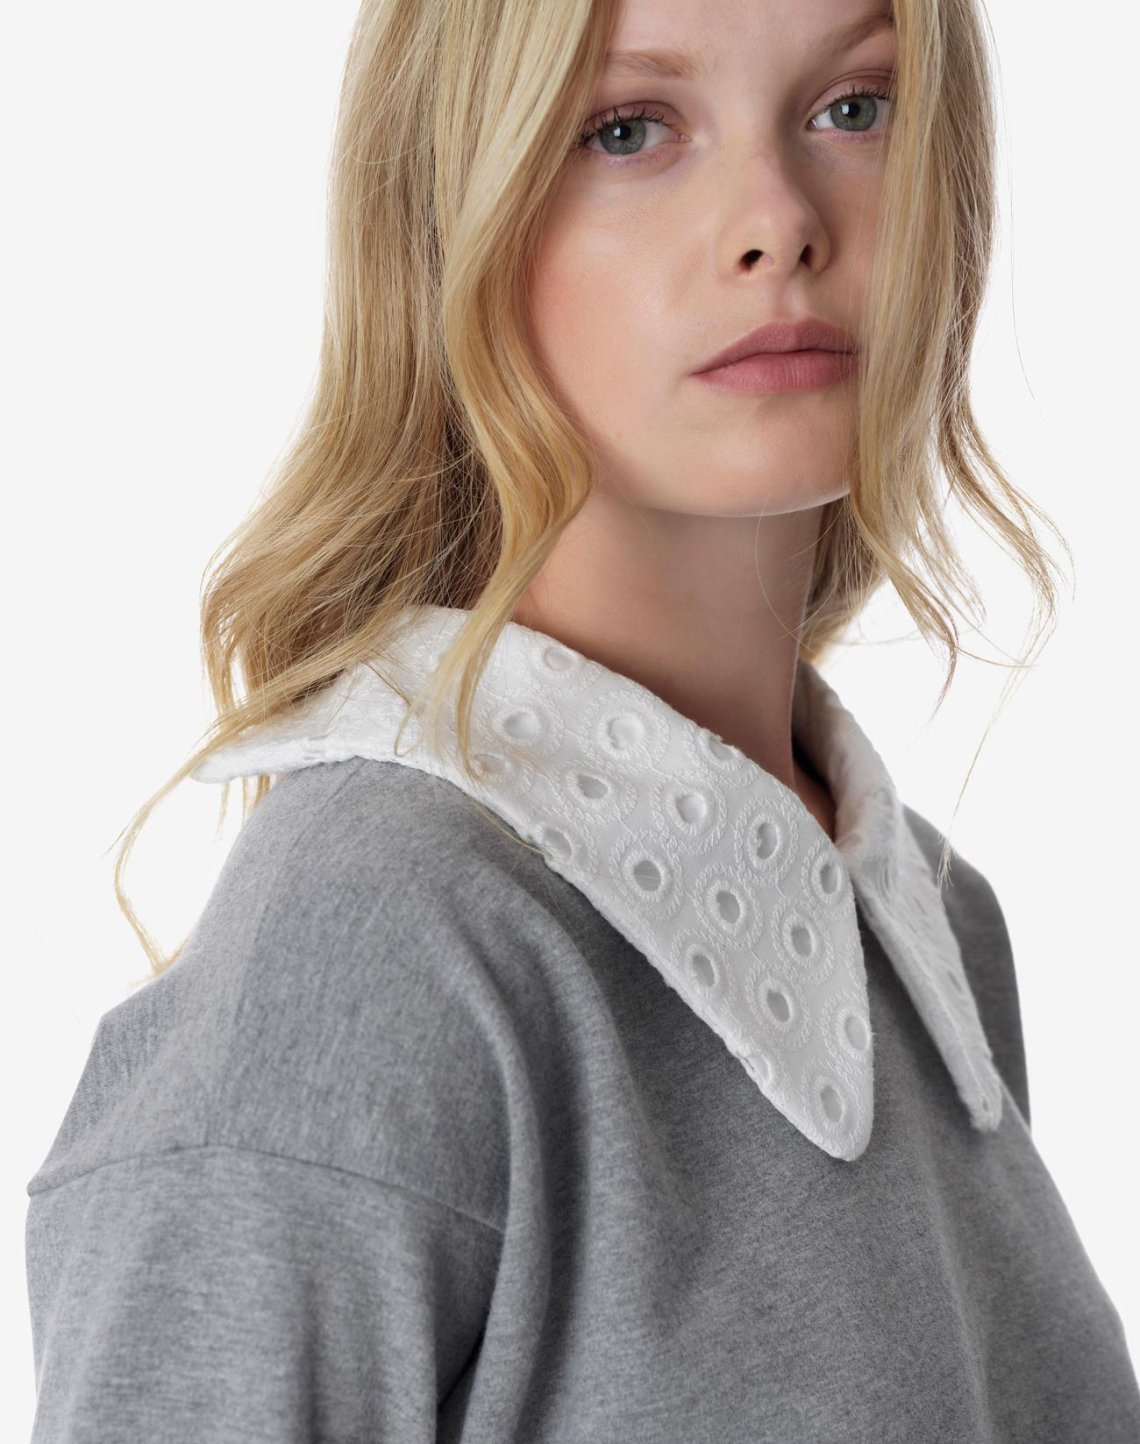 Sweatshirt with collar